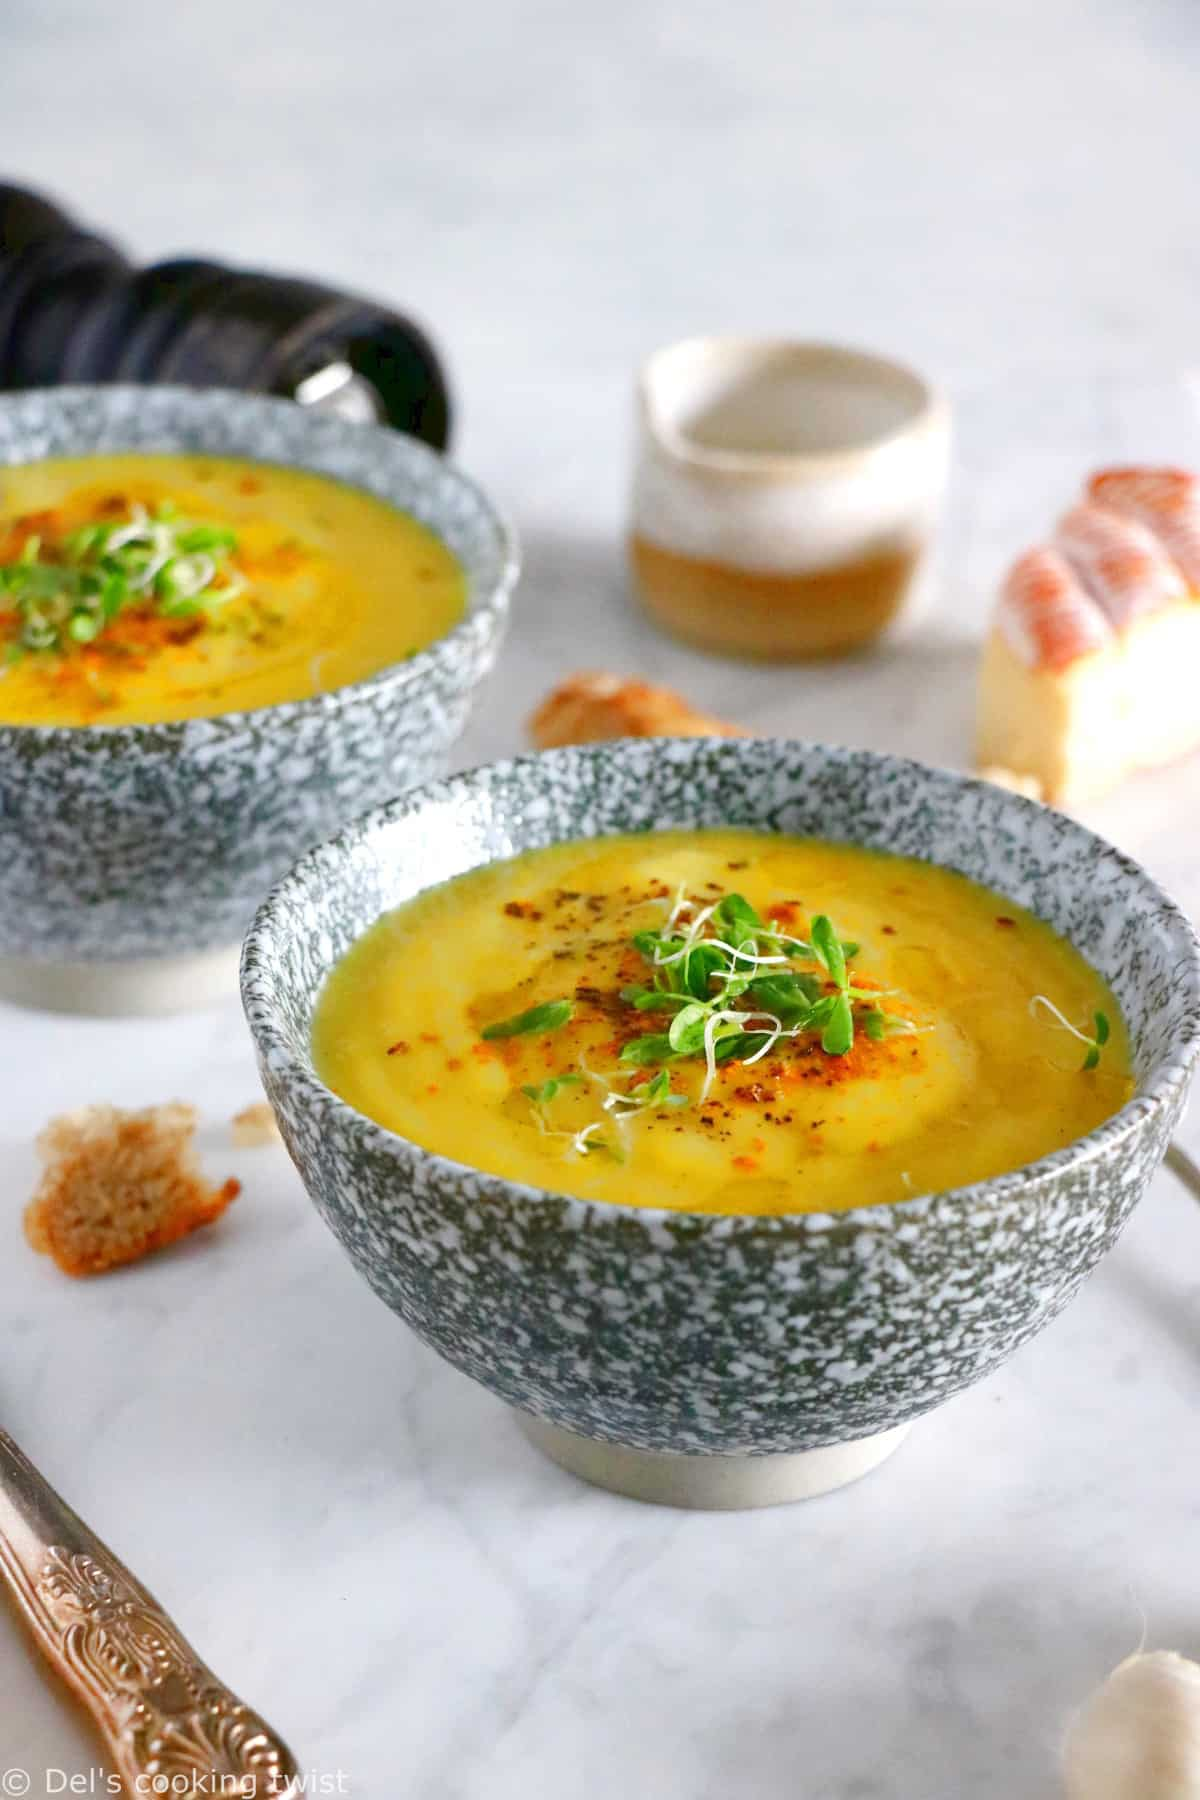 Easy and delicious curried leek potato soup, prepared with 5 ingredients only, and packed with warm, comforting flavors.